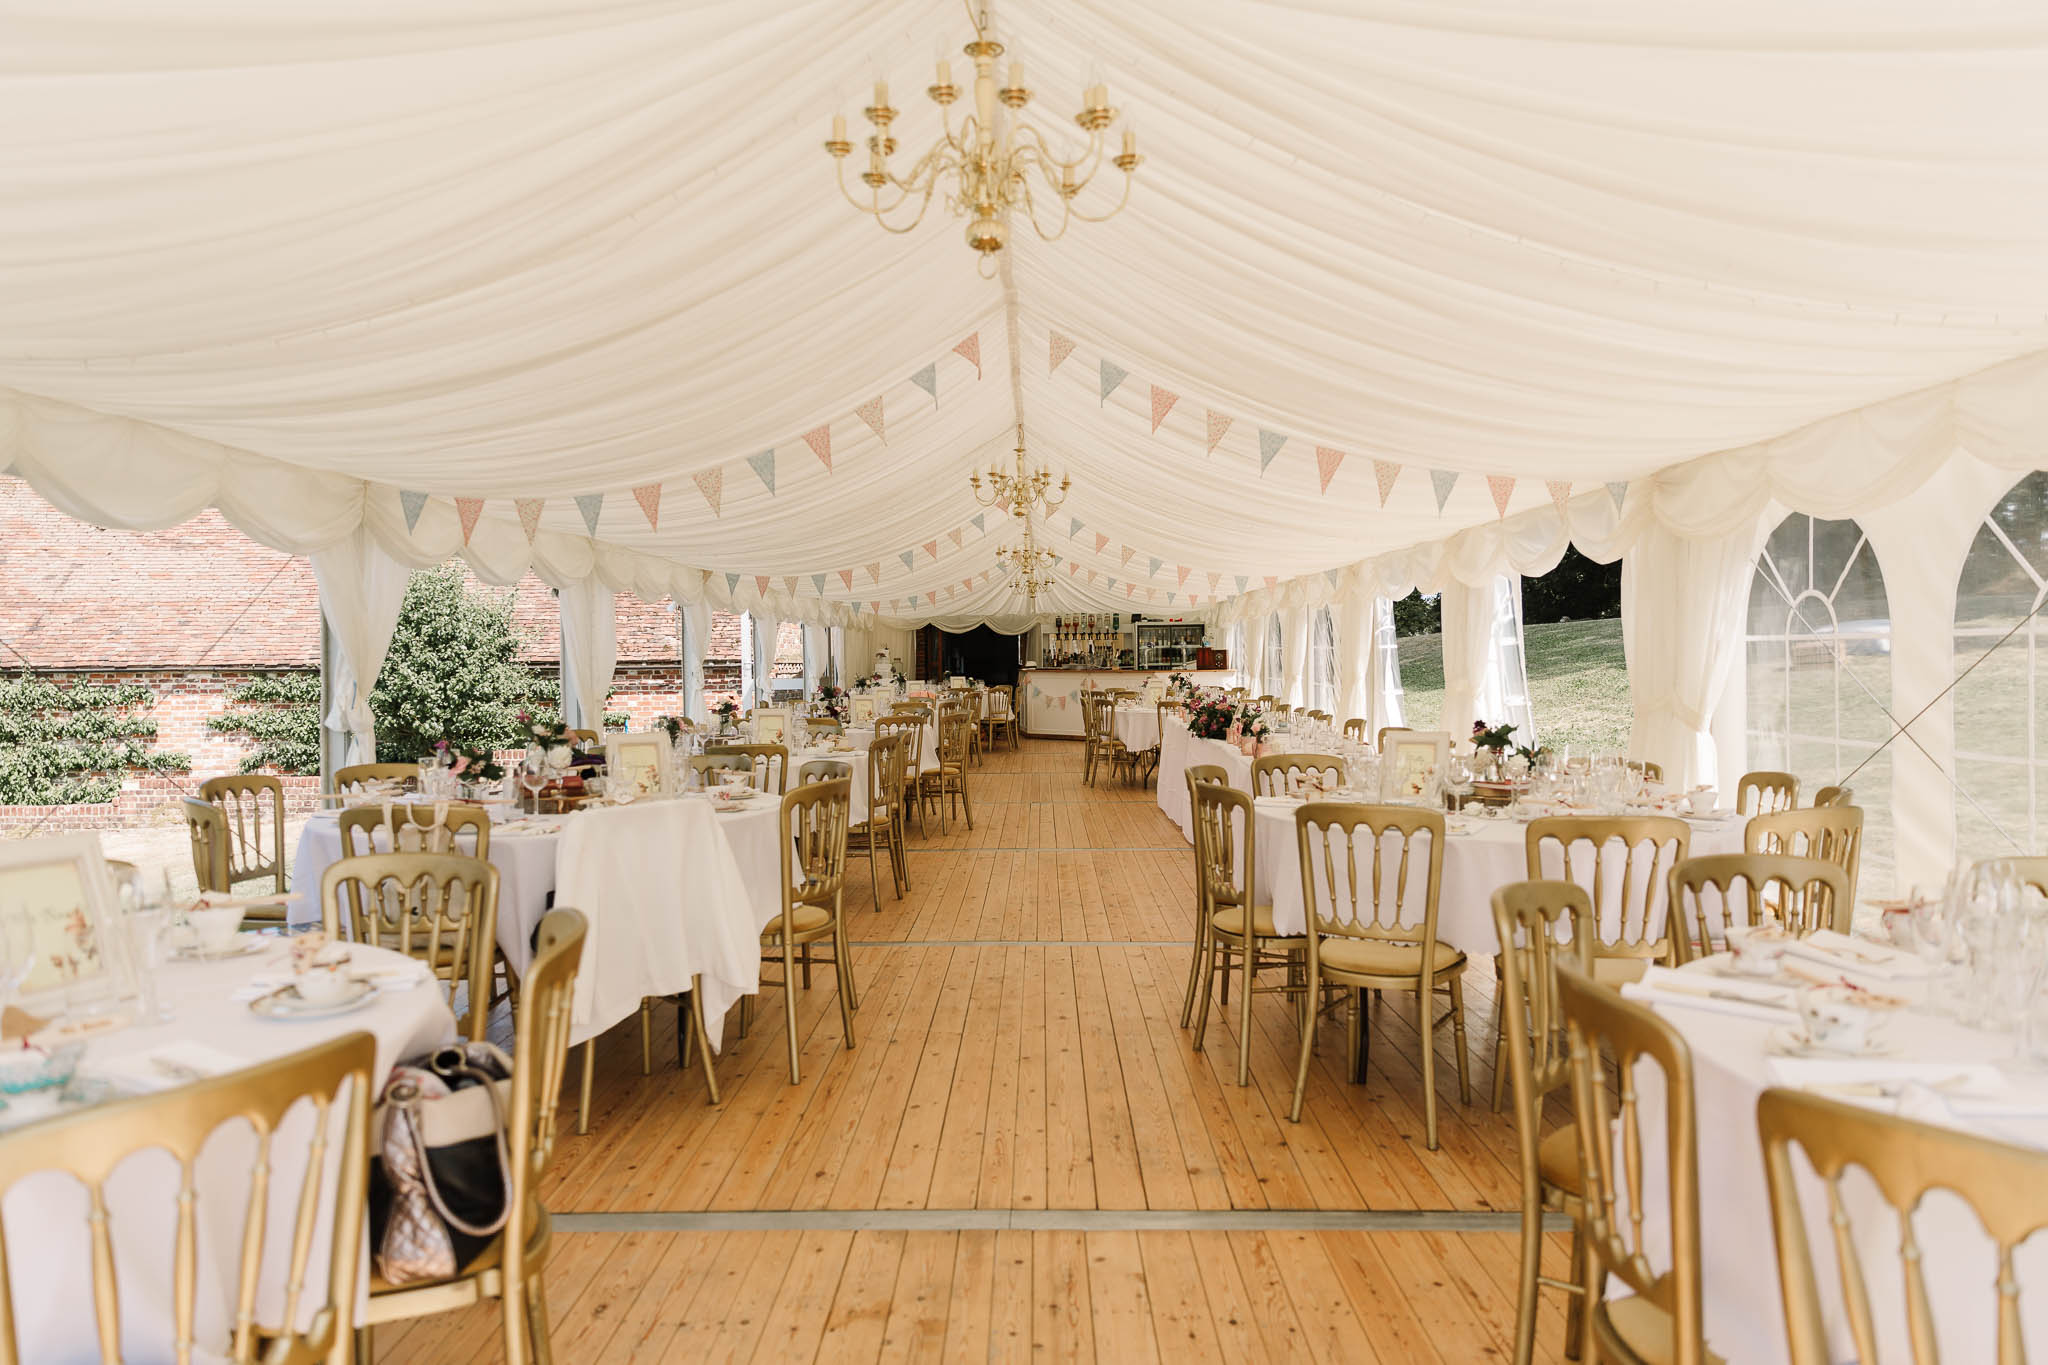 afternoon tea wedding reception room - ENGLISH COUNTRY WEDDING AT SWARLING MANOR